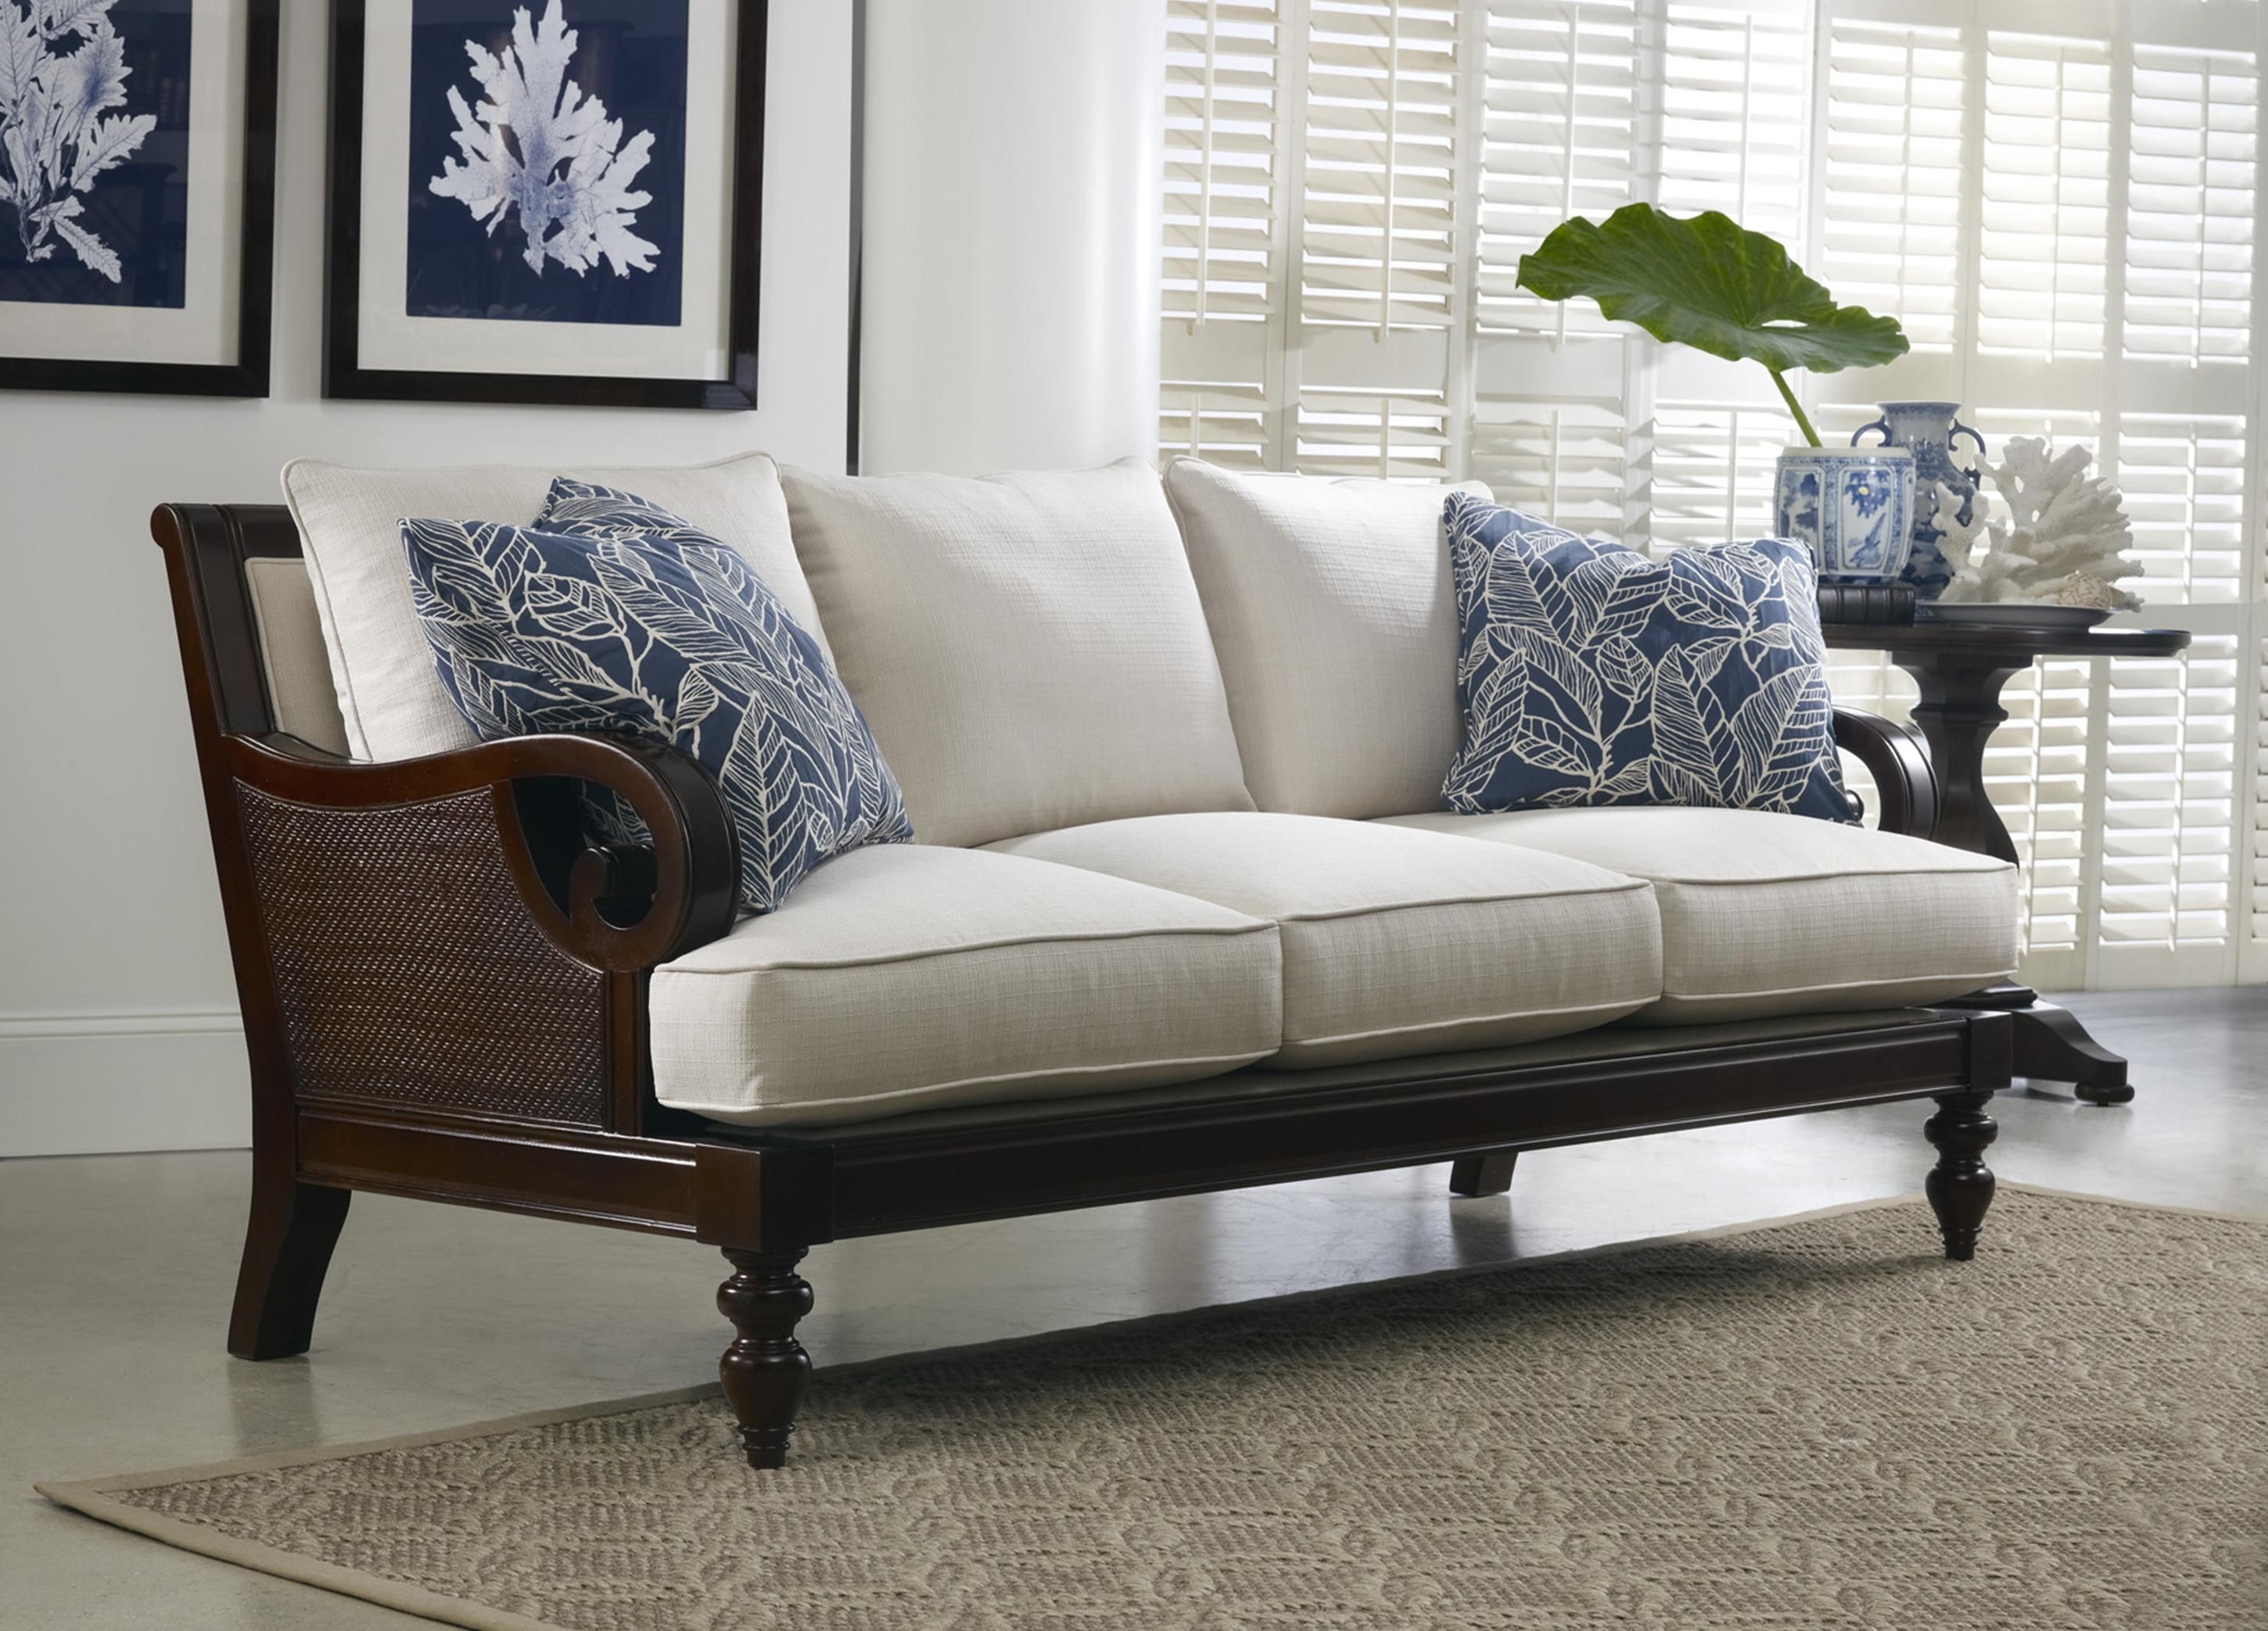 Attractive Tailynn Tropical Sofa With Exposed Wood And Scrolled Arms